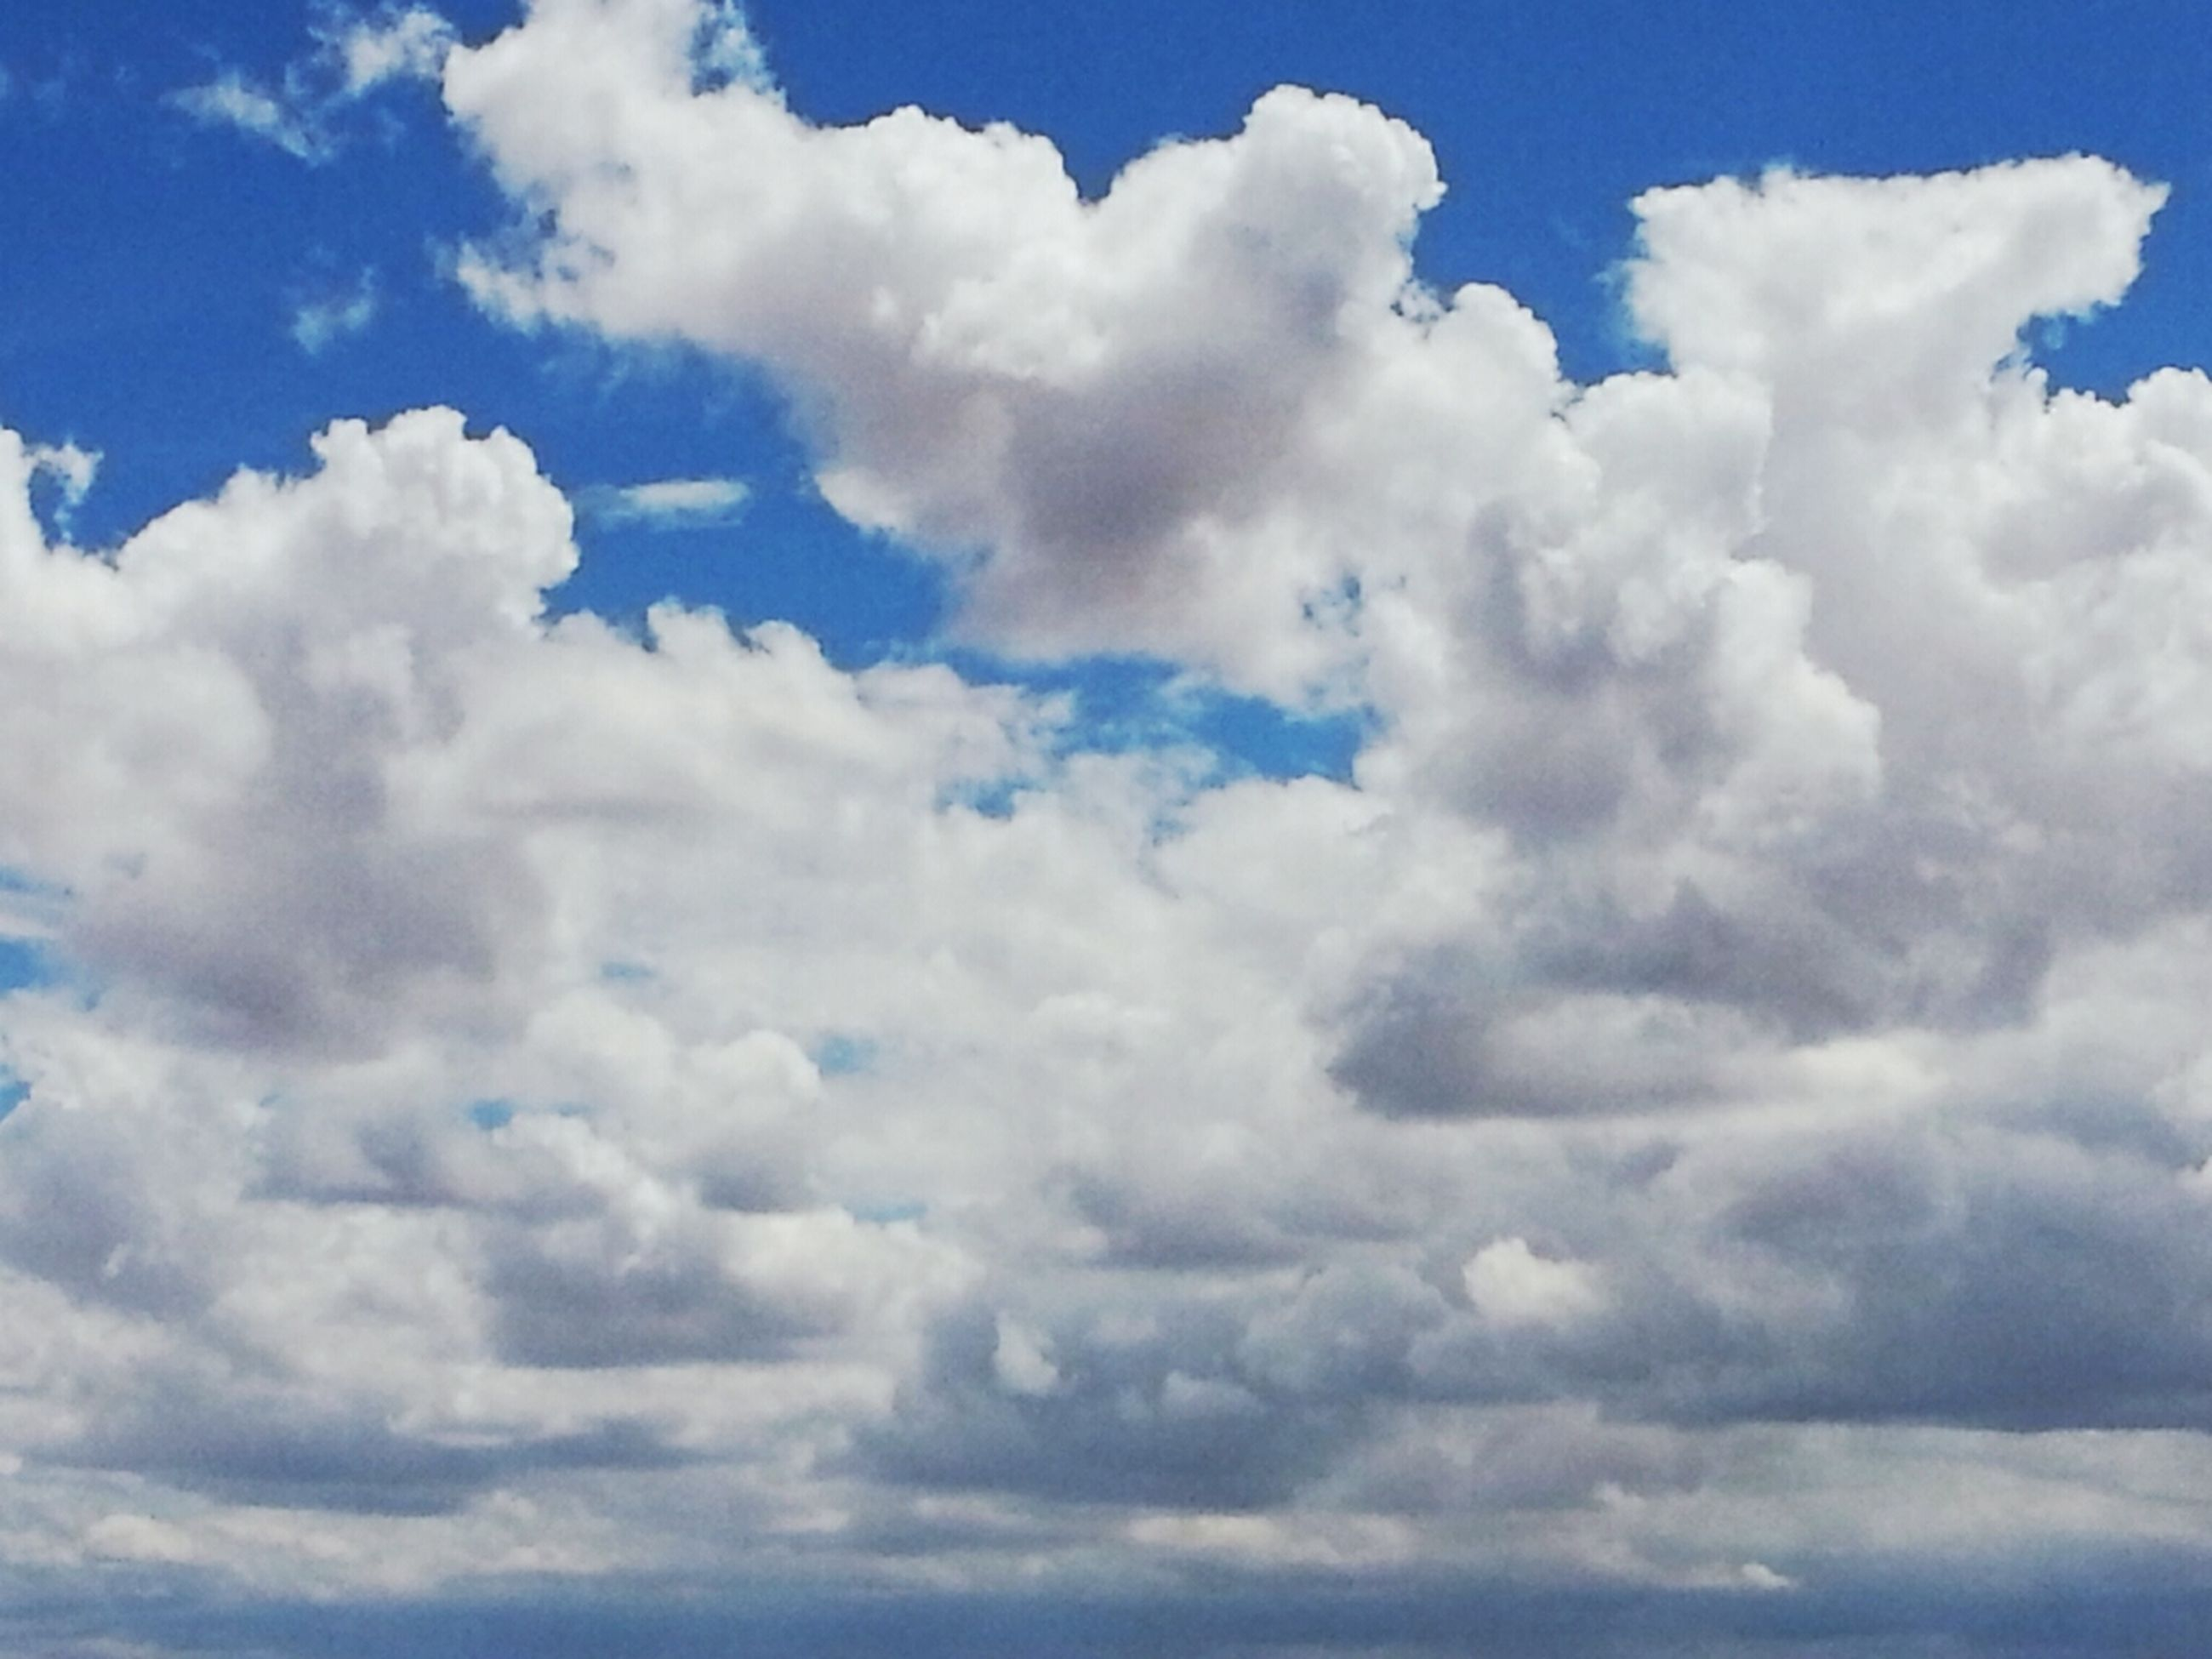 sky, cloud - sky, sky only, beauty in nature, tranquility, low angle view, scenics, tranquil scene, blue, nature, cloudscape, cloudy, cloud, white color, backgrounds, full frame, idyllic, fluffy, white, day